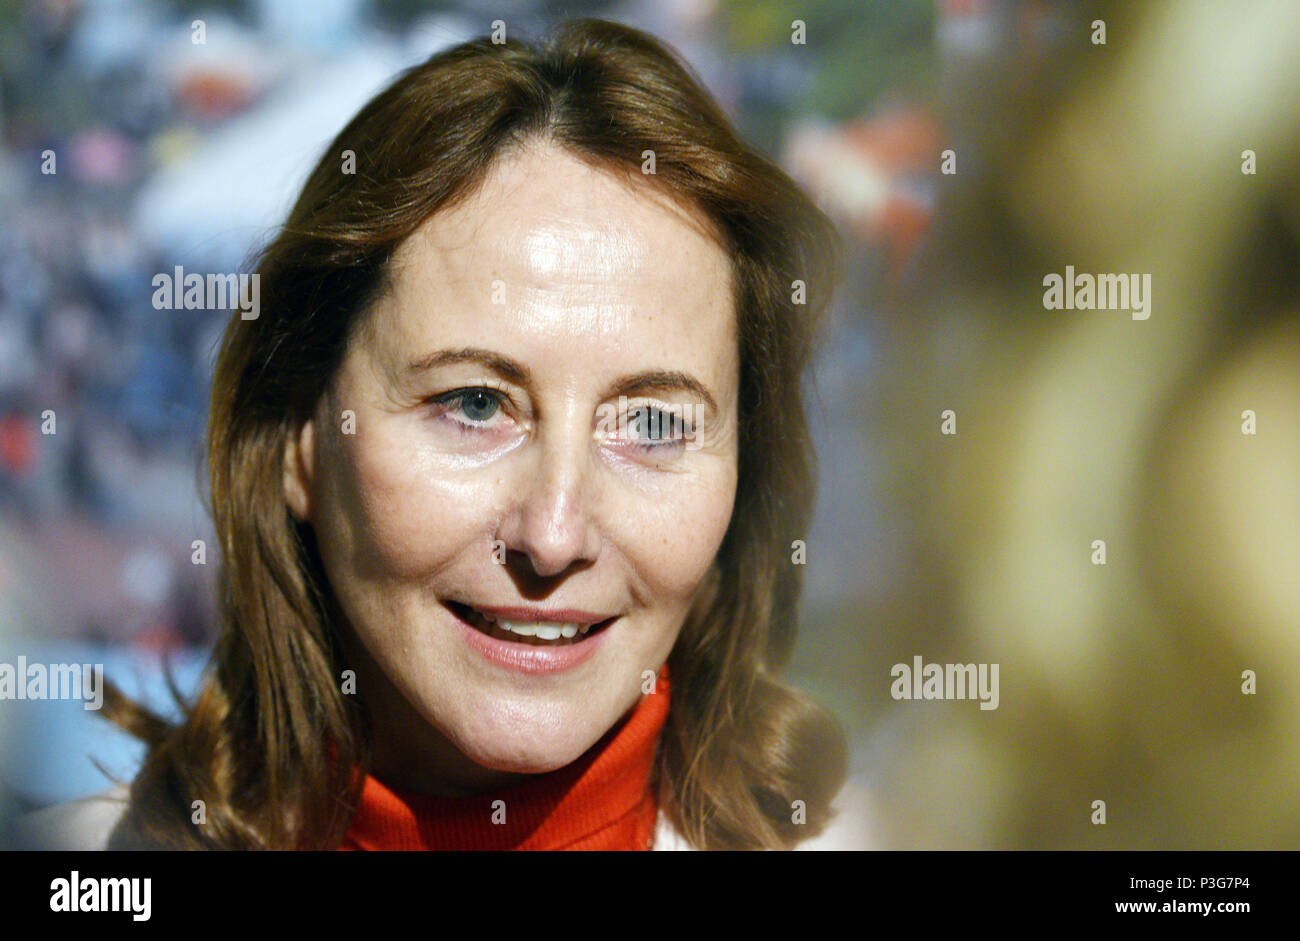 Segolene Royal on 2017/11/23 on the occasion of the inauguration of a biomass boiler near Rouen (northern France) - Stock Image